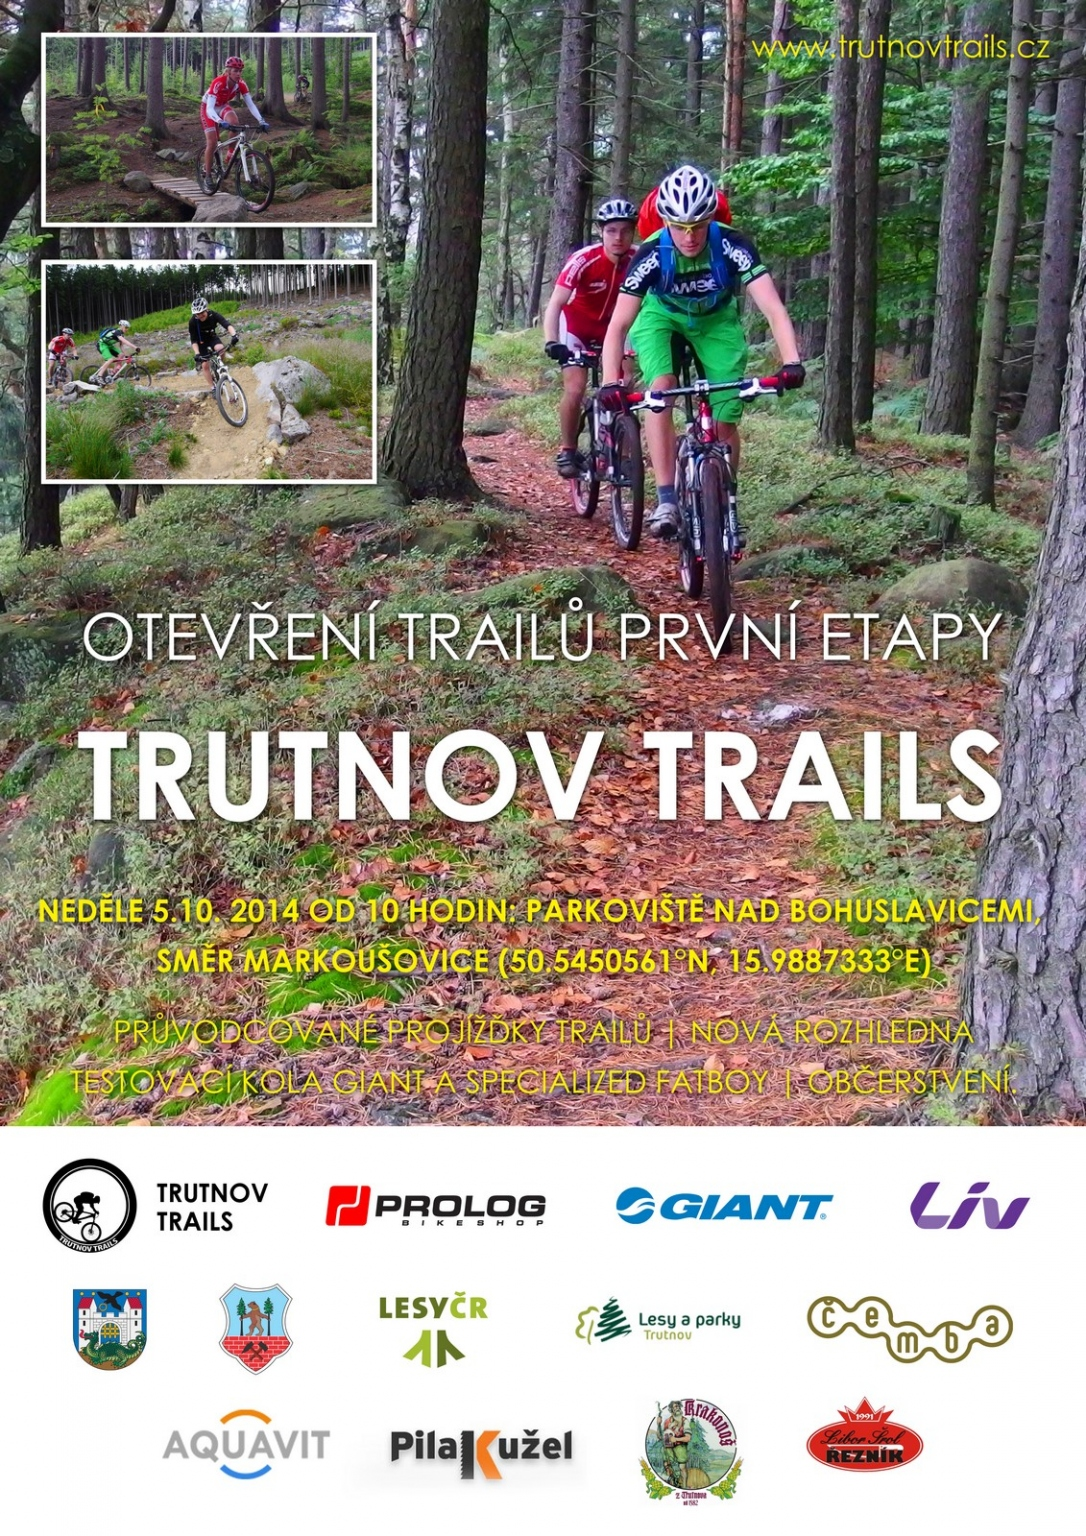 trutnov_trails